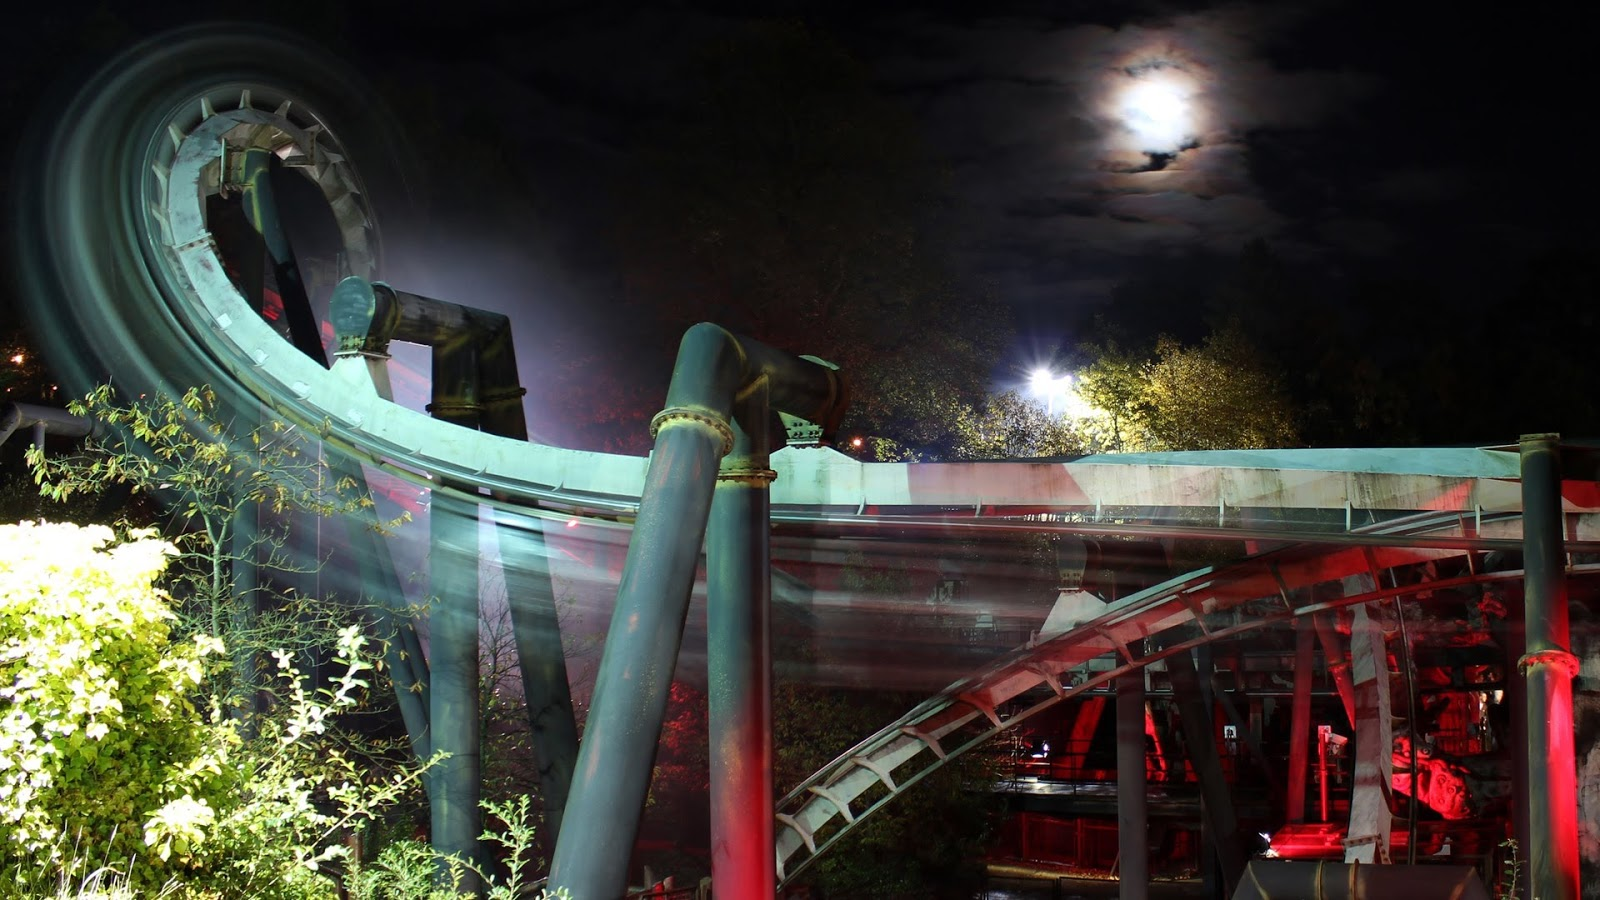 Photo of Nemesis Roller Coaster at Alton Towers at night